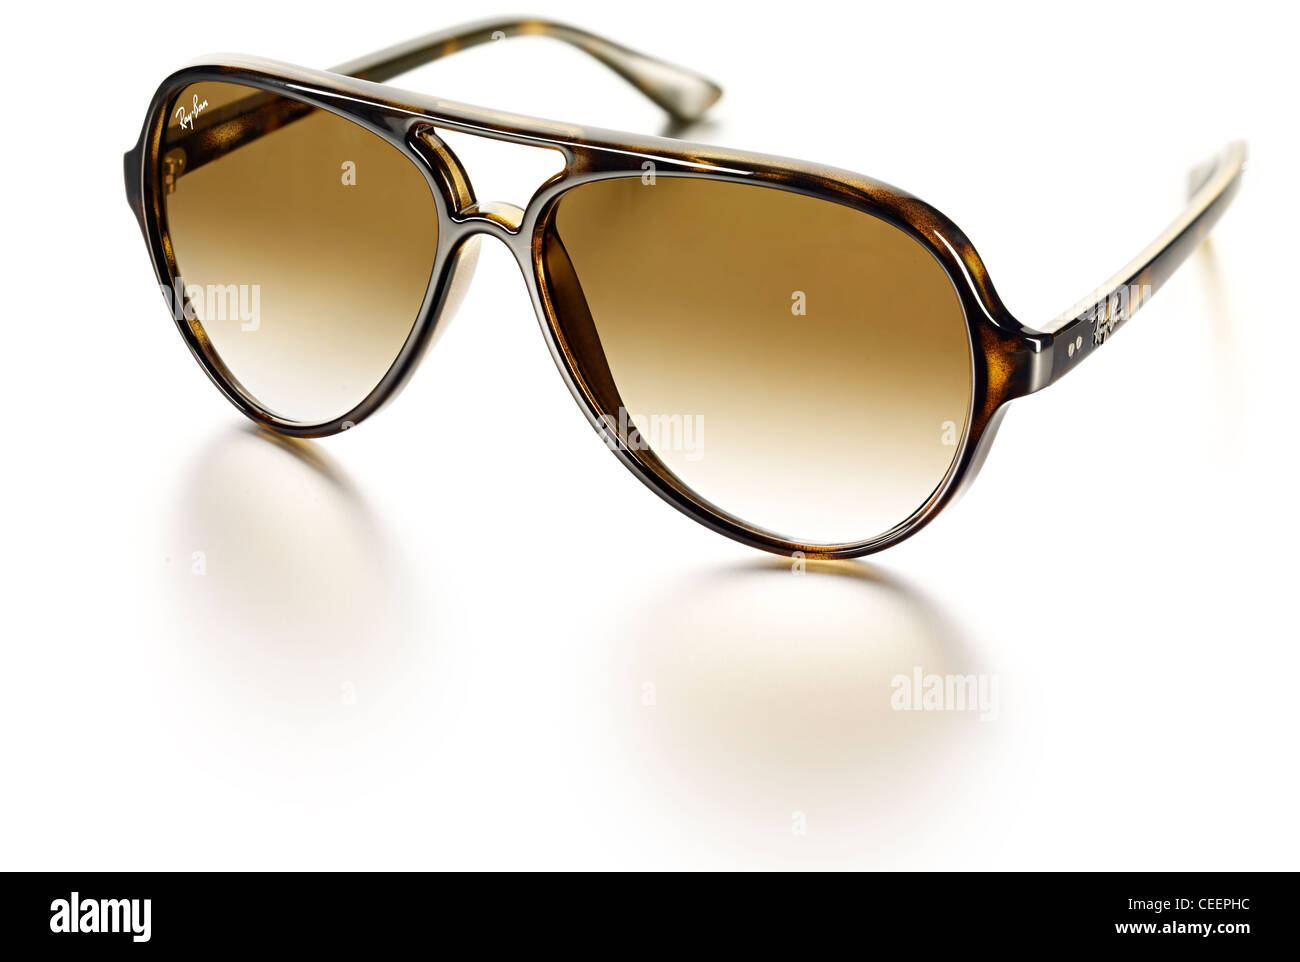 bd42c3acf7 Lunettes style Ray Ban Banque D'Images, Photo Stock: 43350984 - Alamy